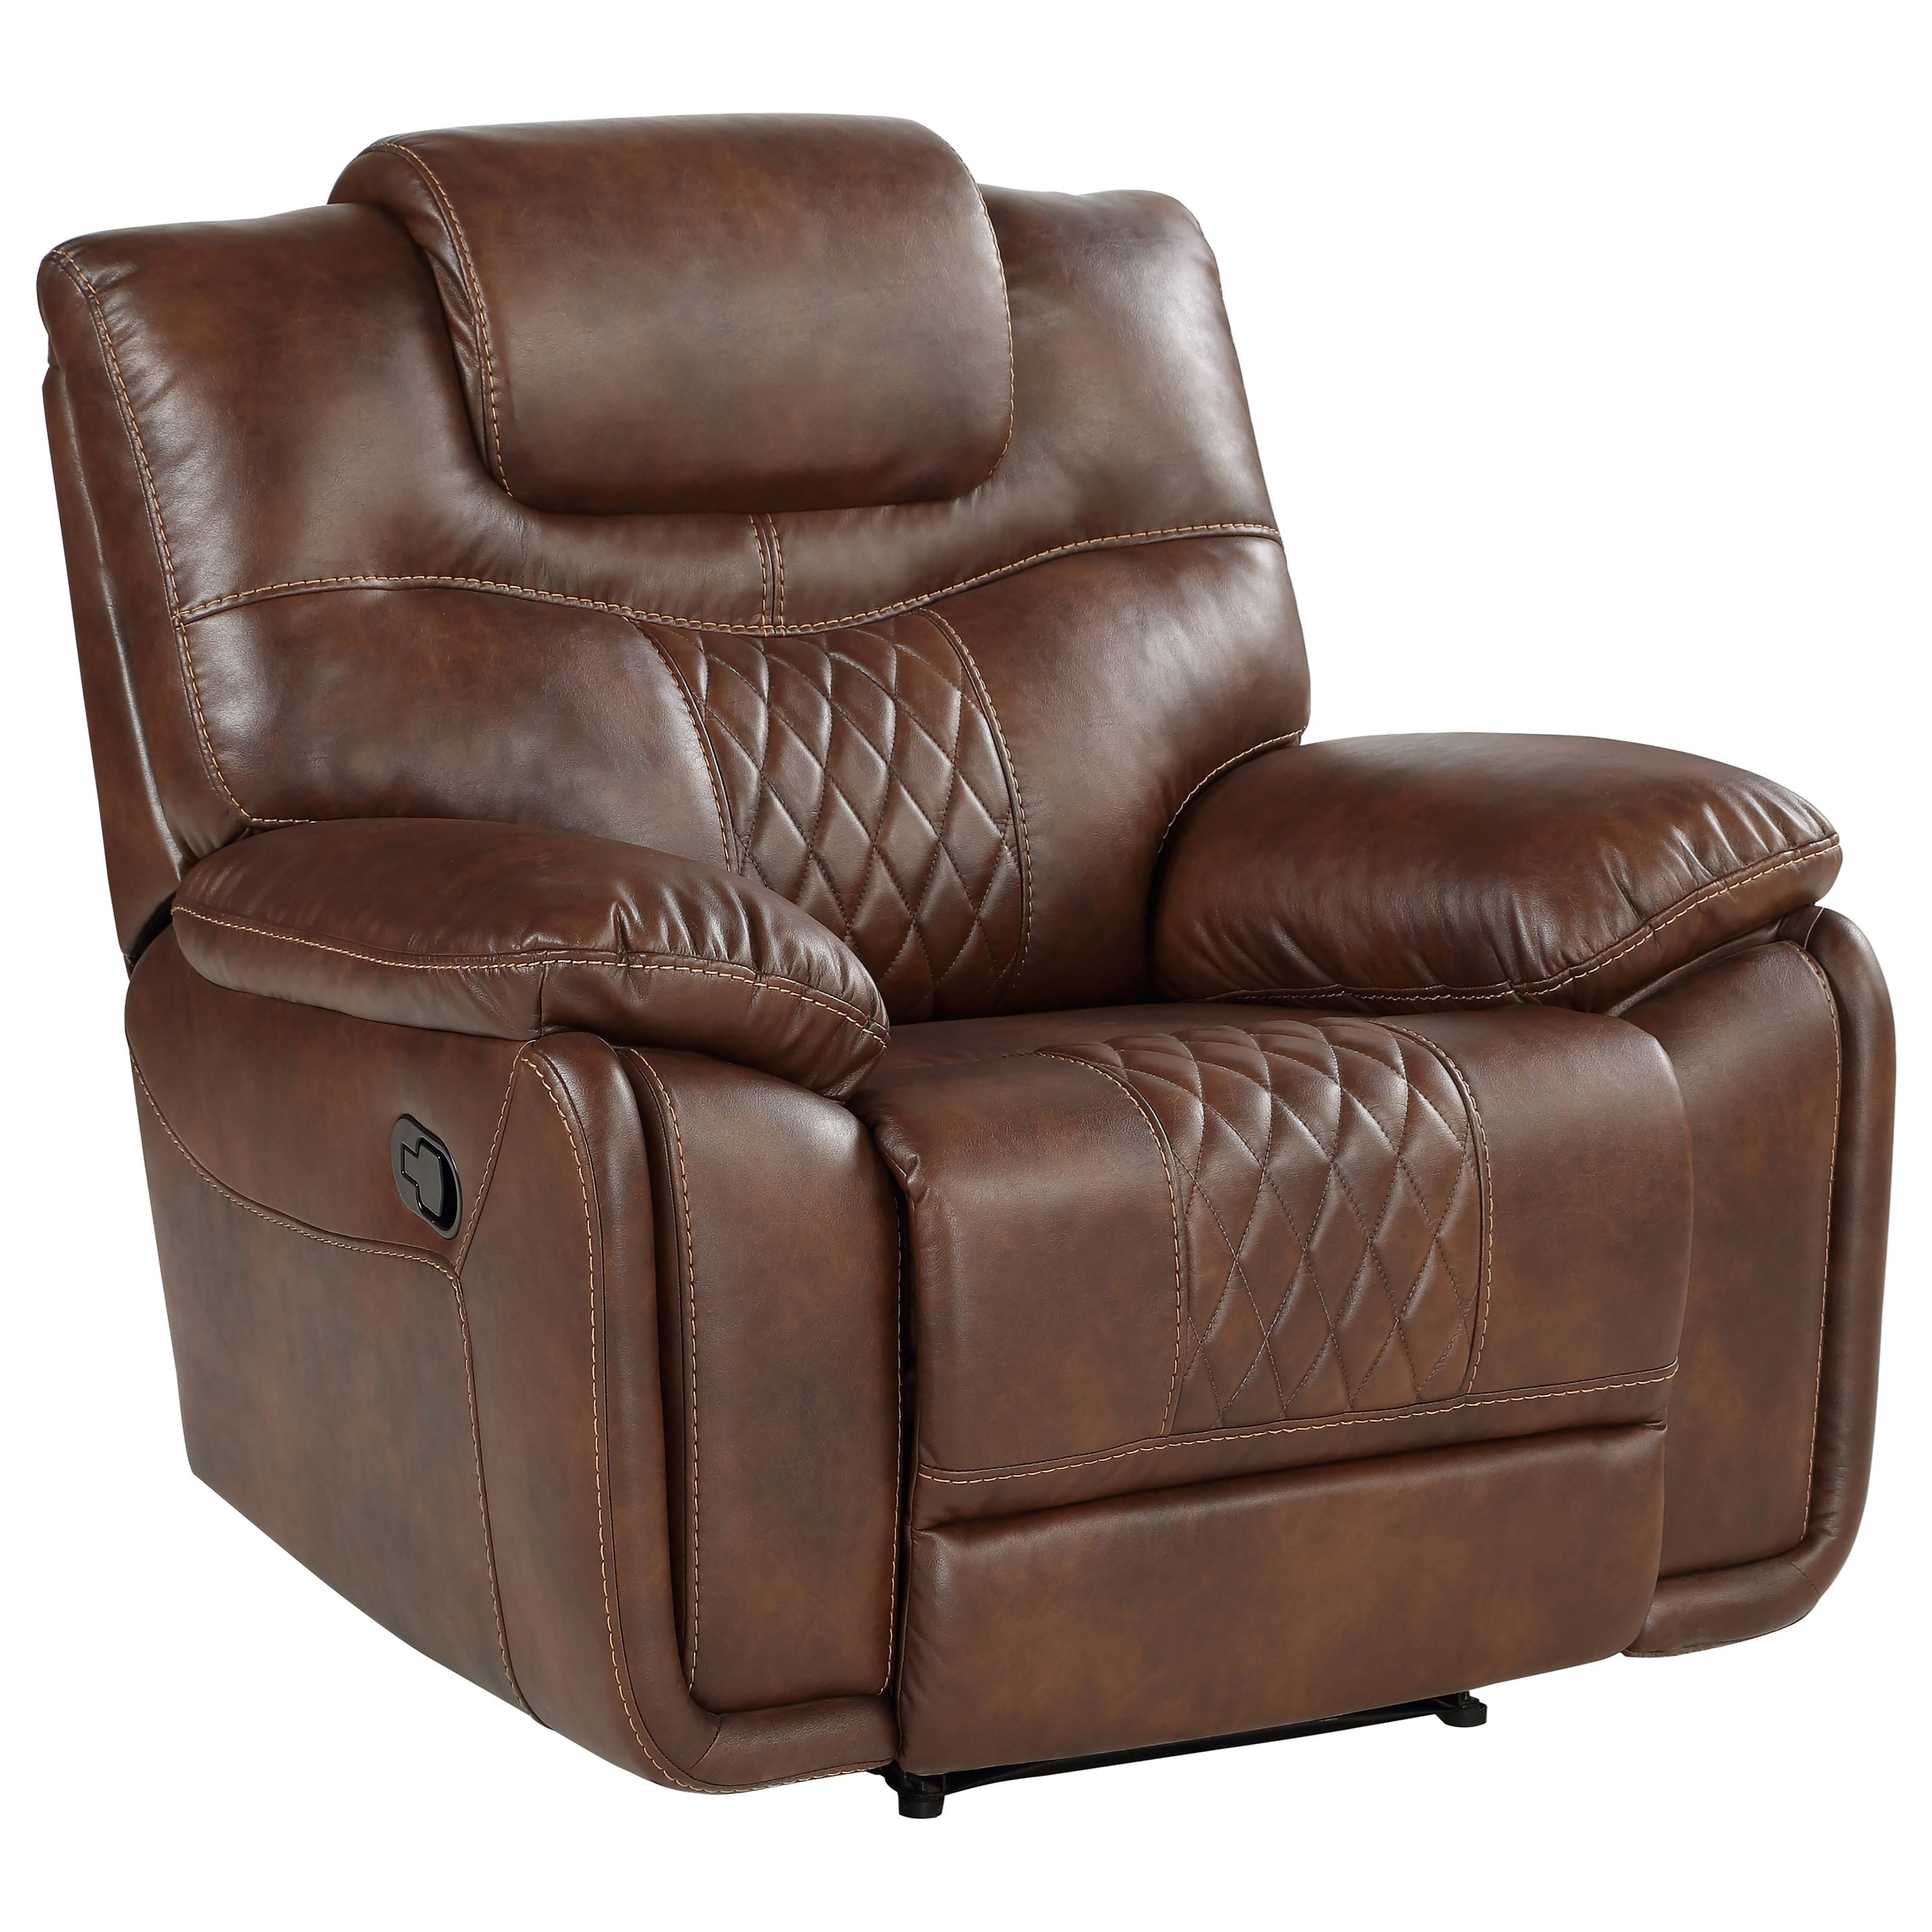 Boardwalk BK Manual Recliner Chair by Steve Silver at Northeast Factory Direct